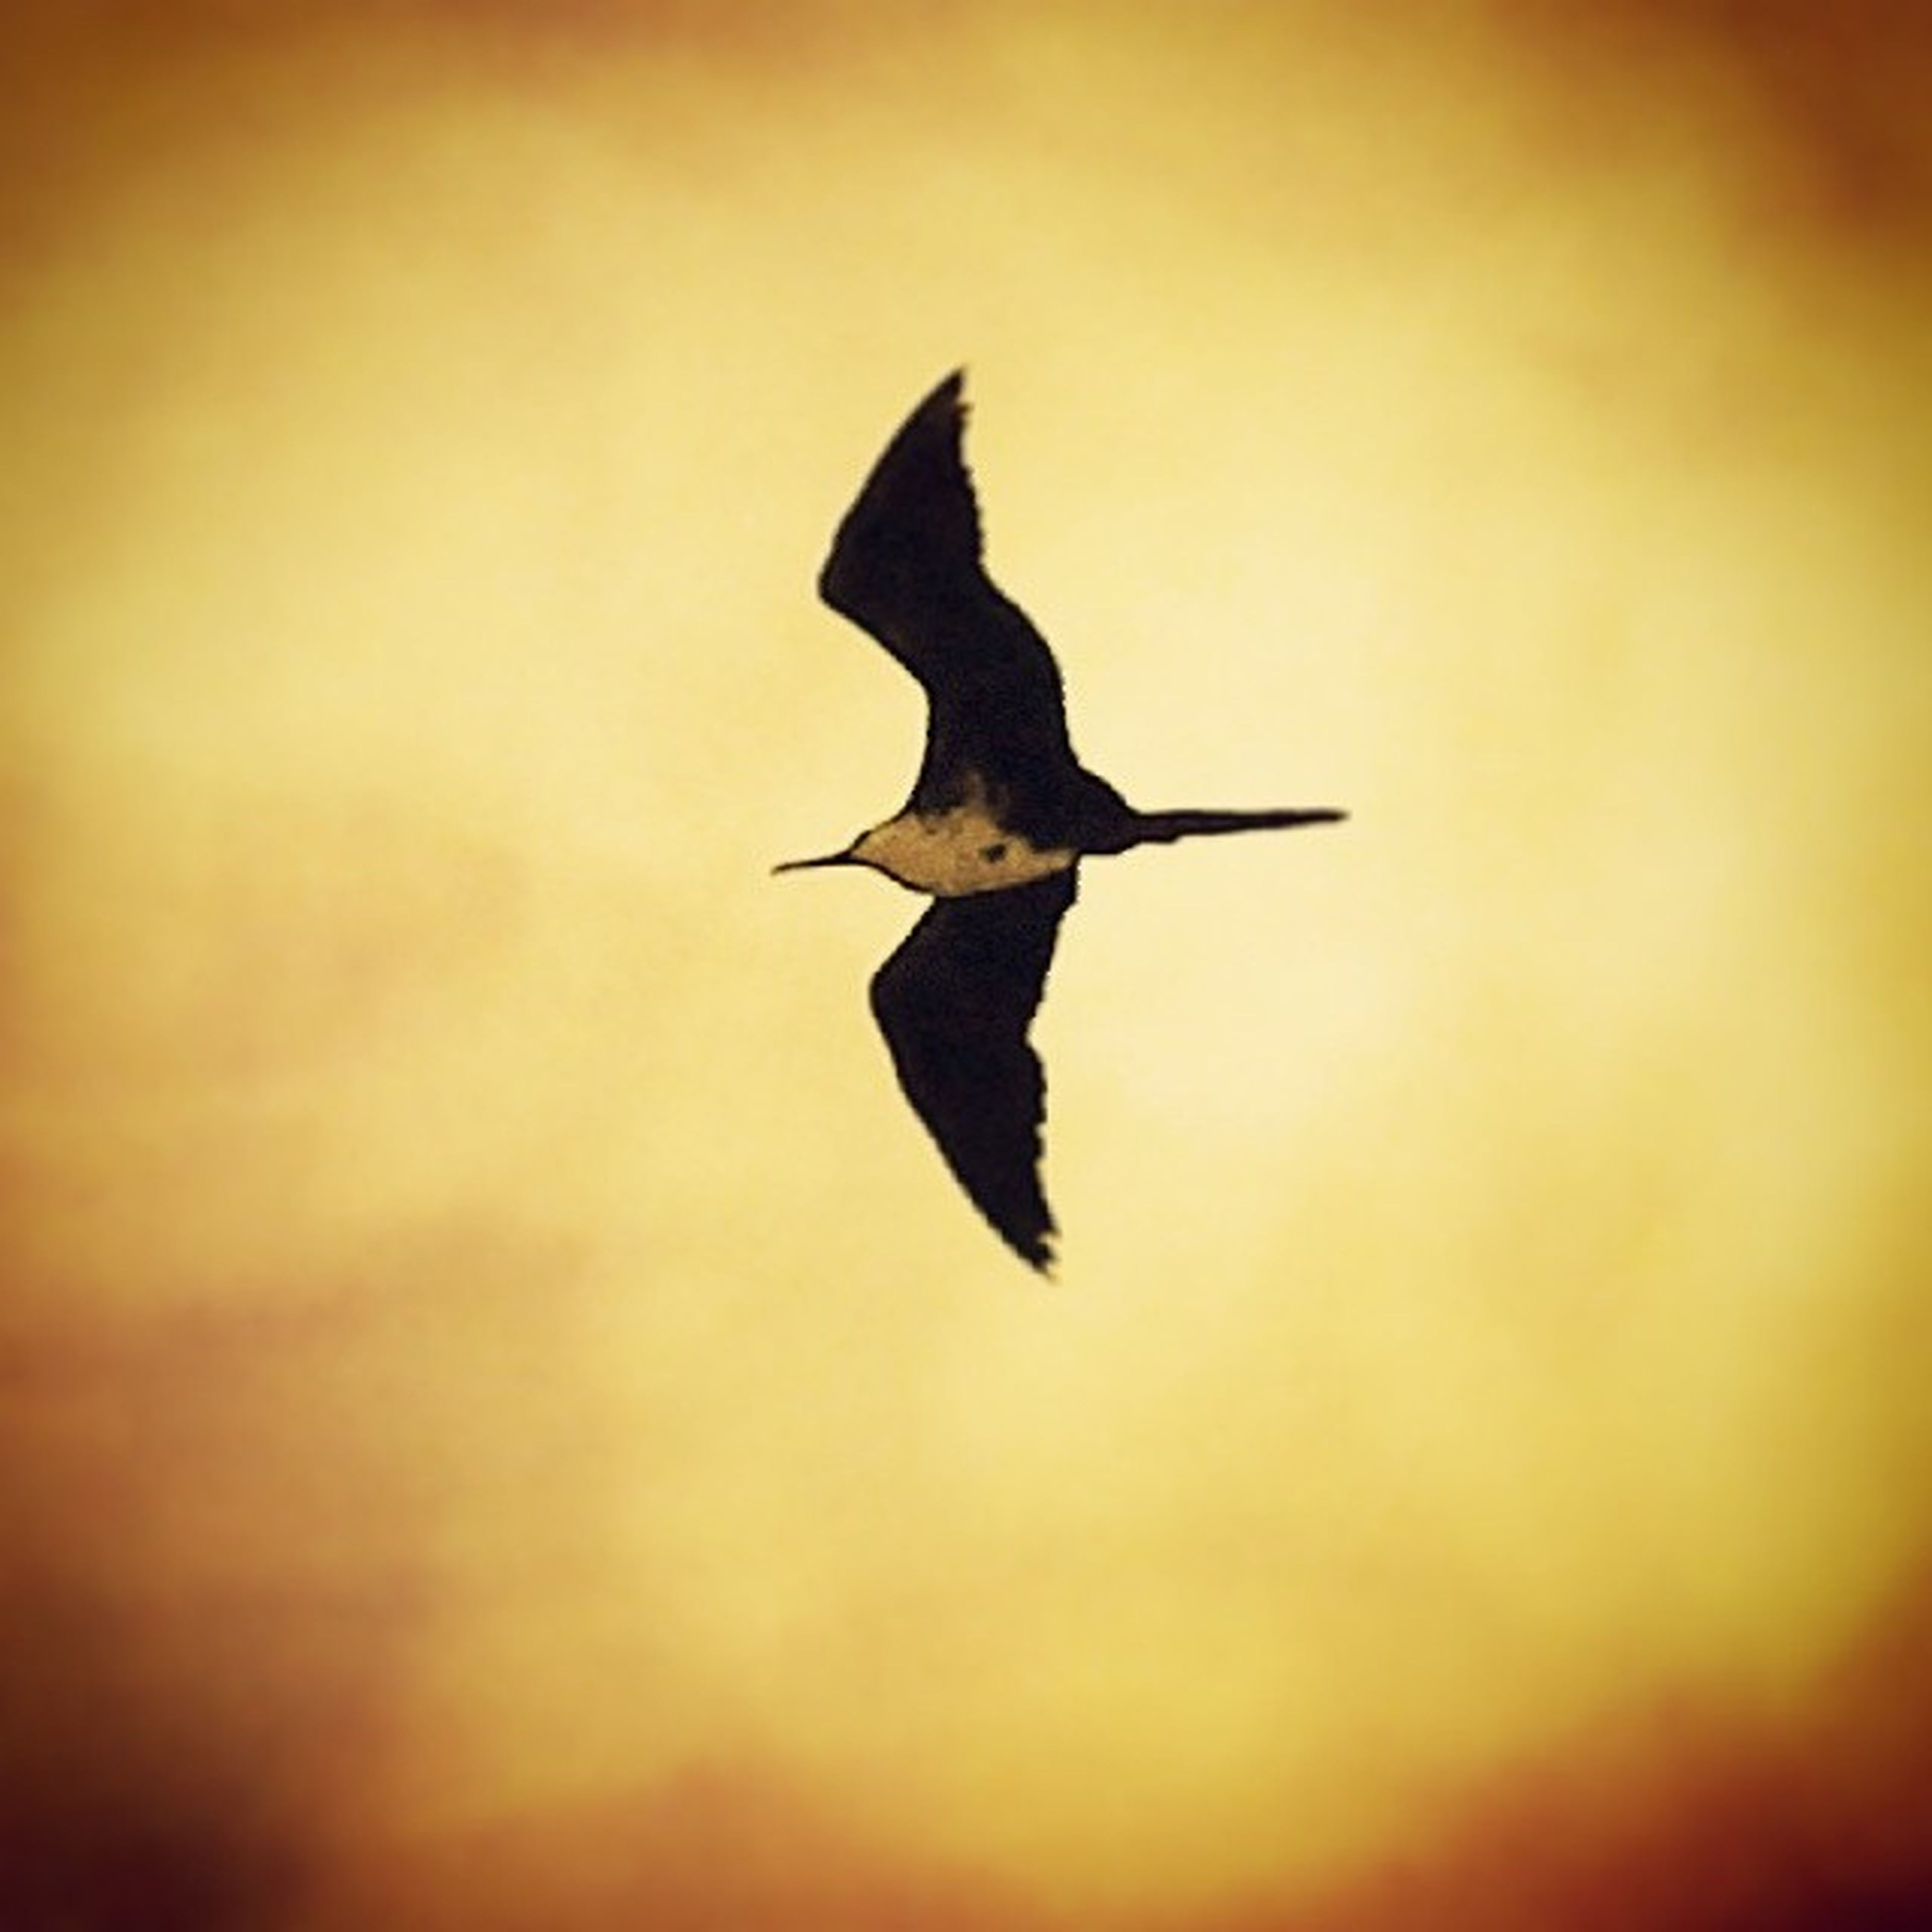 bird, animal themes, flying, animals in the wild, one animal, spread wings, wildlife, mid-air, silhouette, nature, selective focus, sunset, zoology, focus on foreground, low angle view, full length, motion, outdoors, no people, beauty in nature